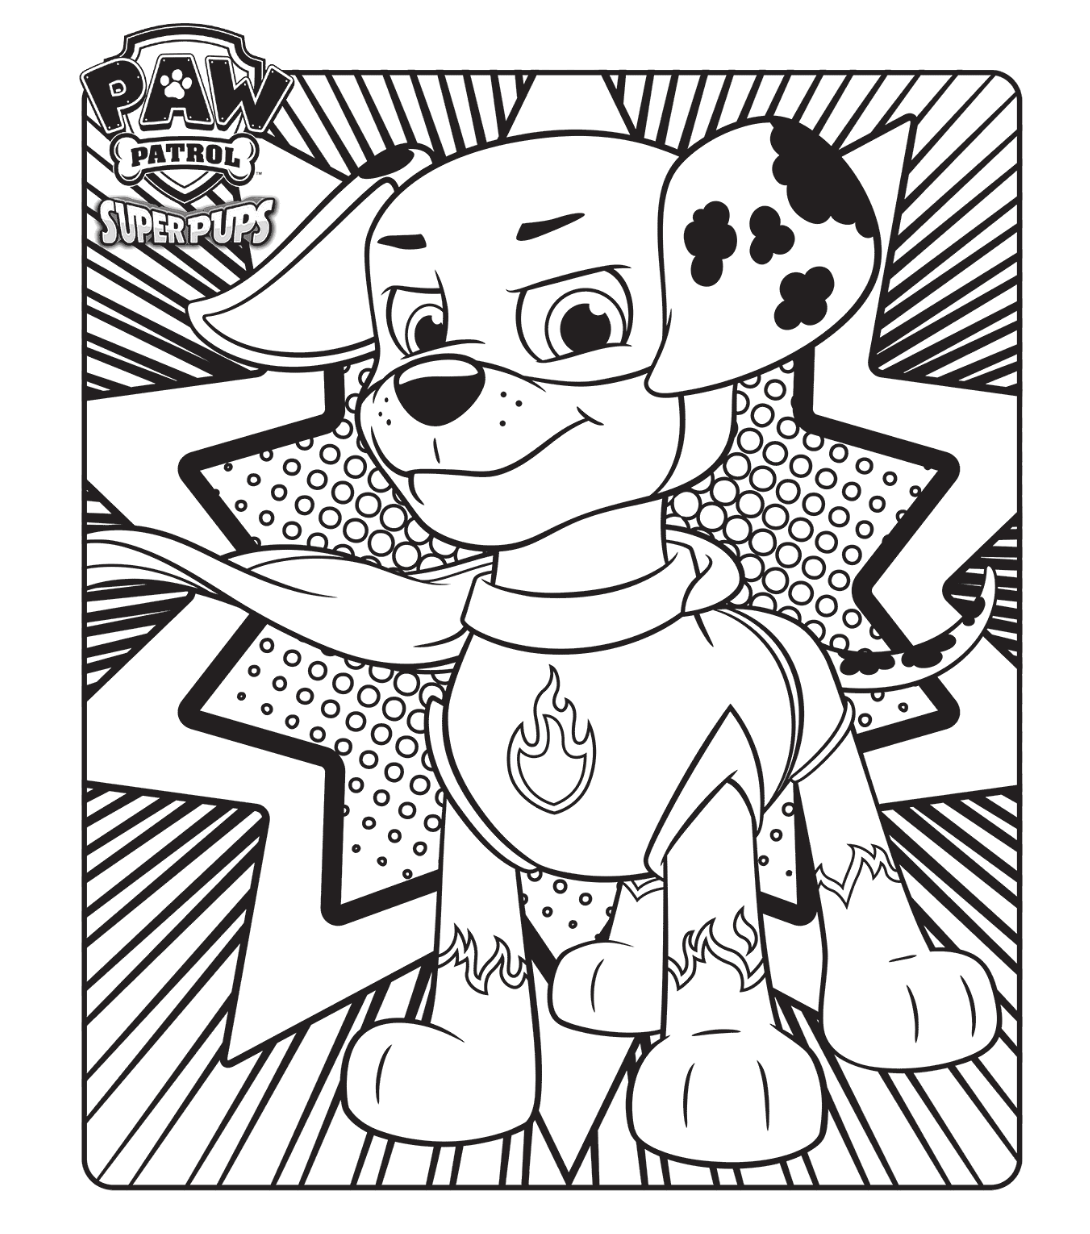 Paw Patrol Super Pups Colouring Page Coloring Pages Pinterest